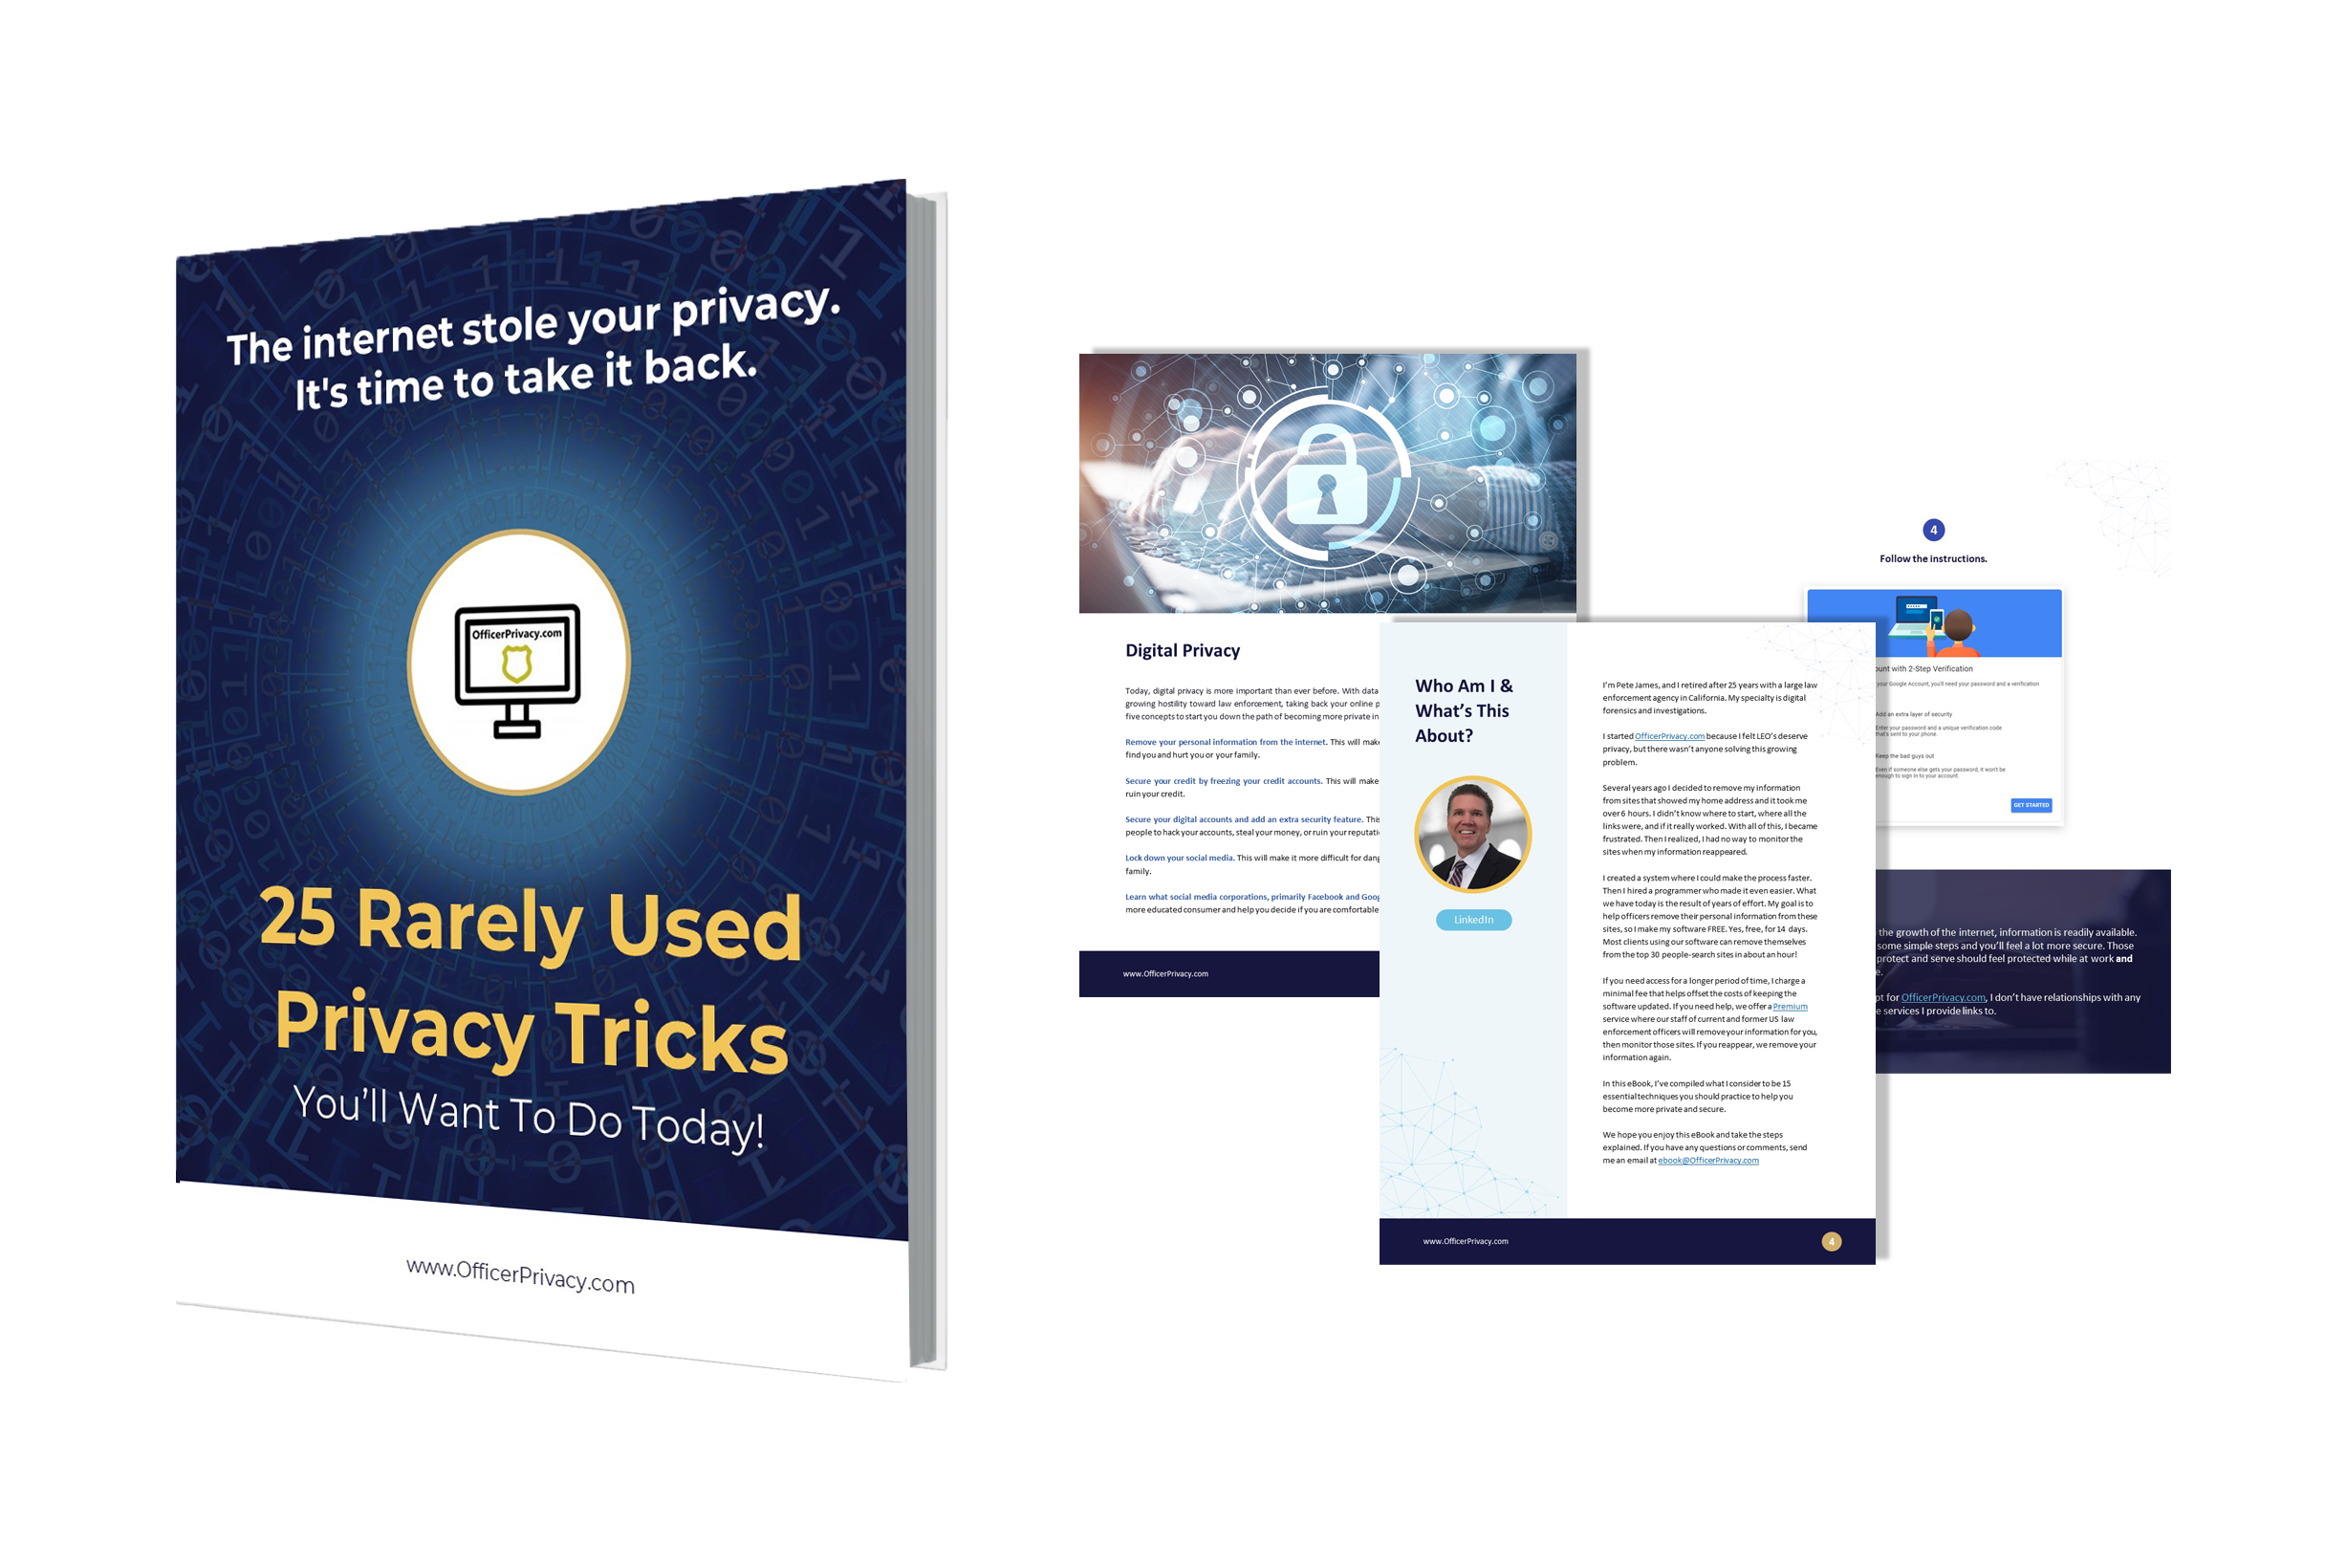 OfficerPrivacy.com Updates Their Already Successful e-Book with New Rarely Used Online Privacy Tricks